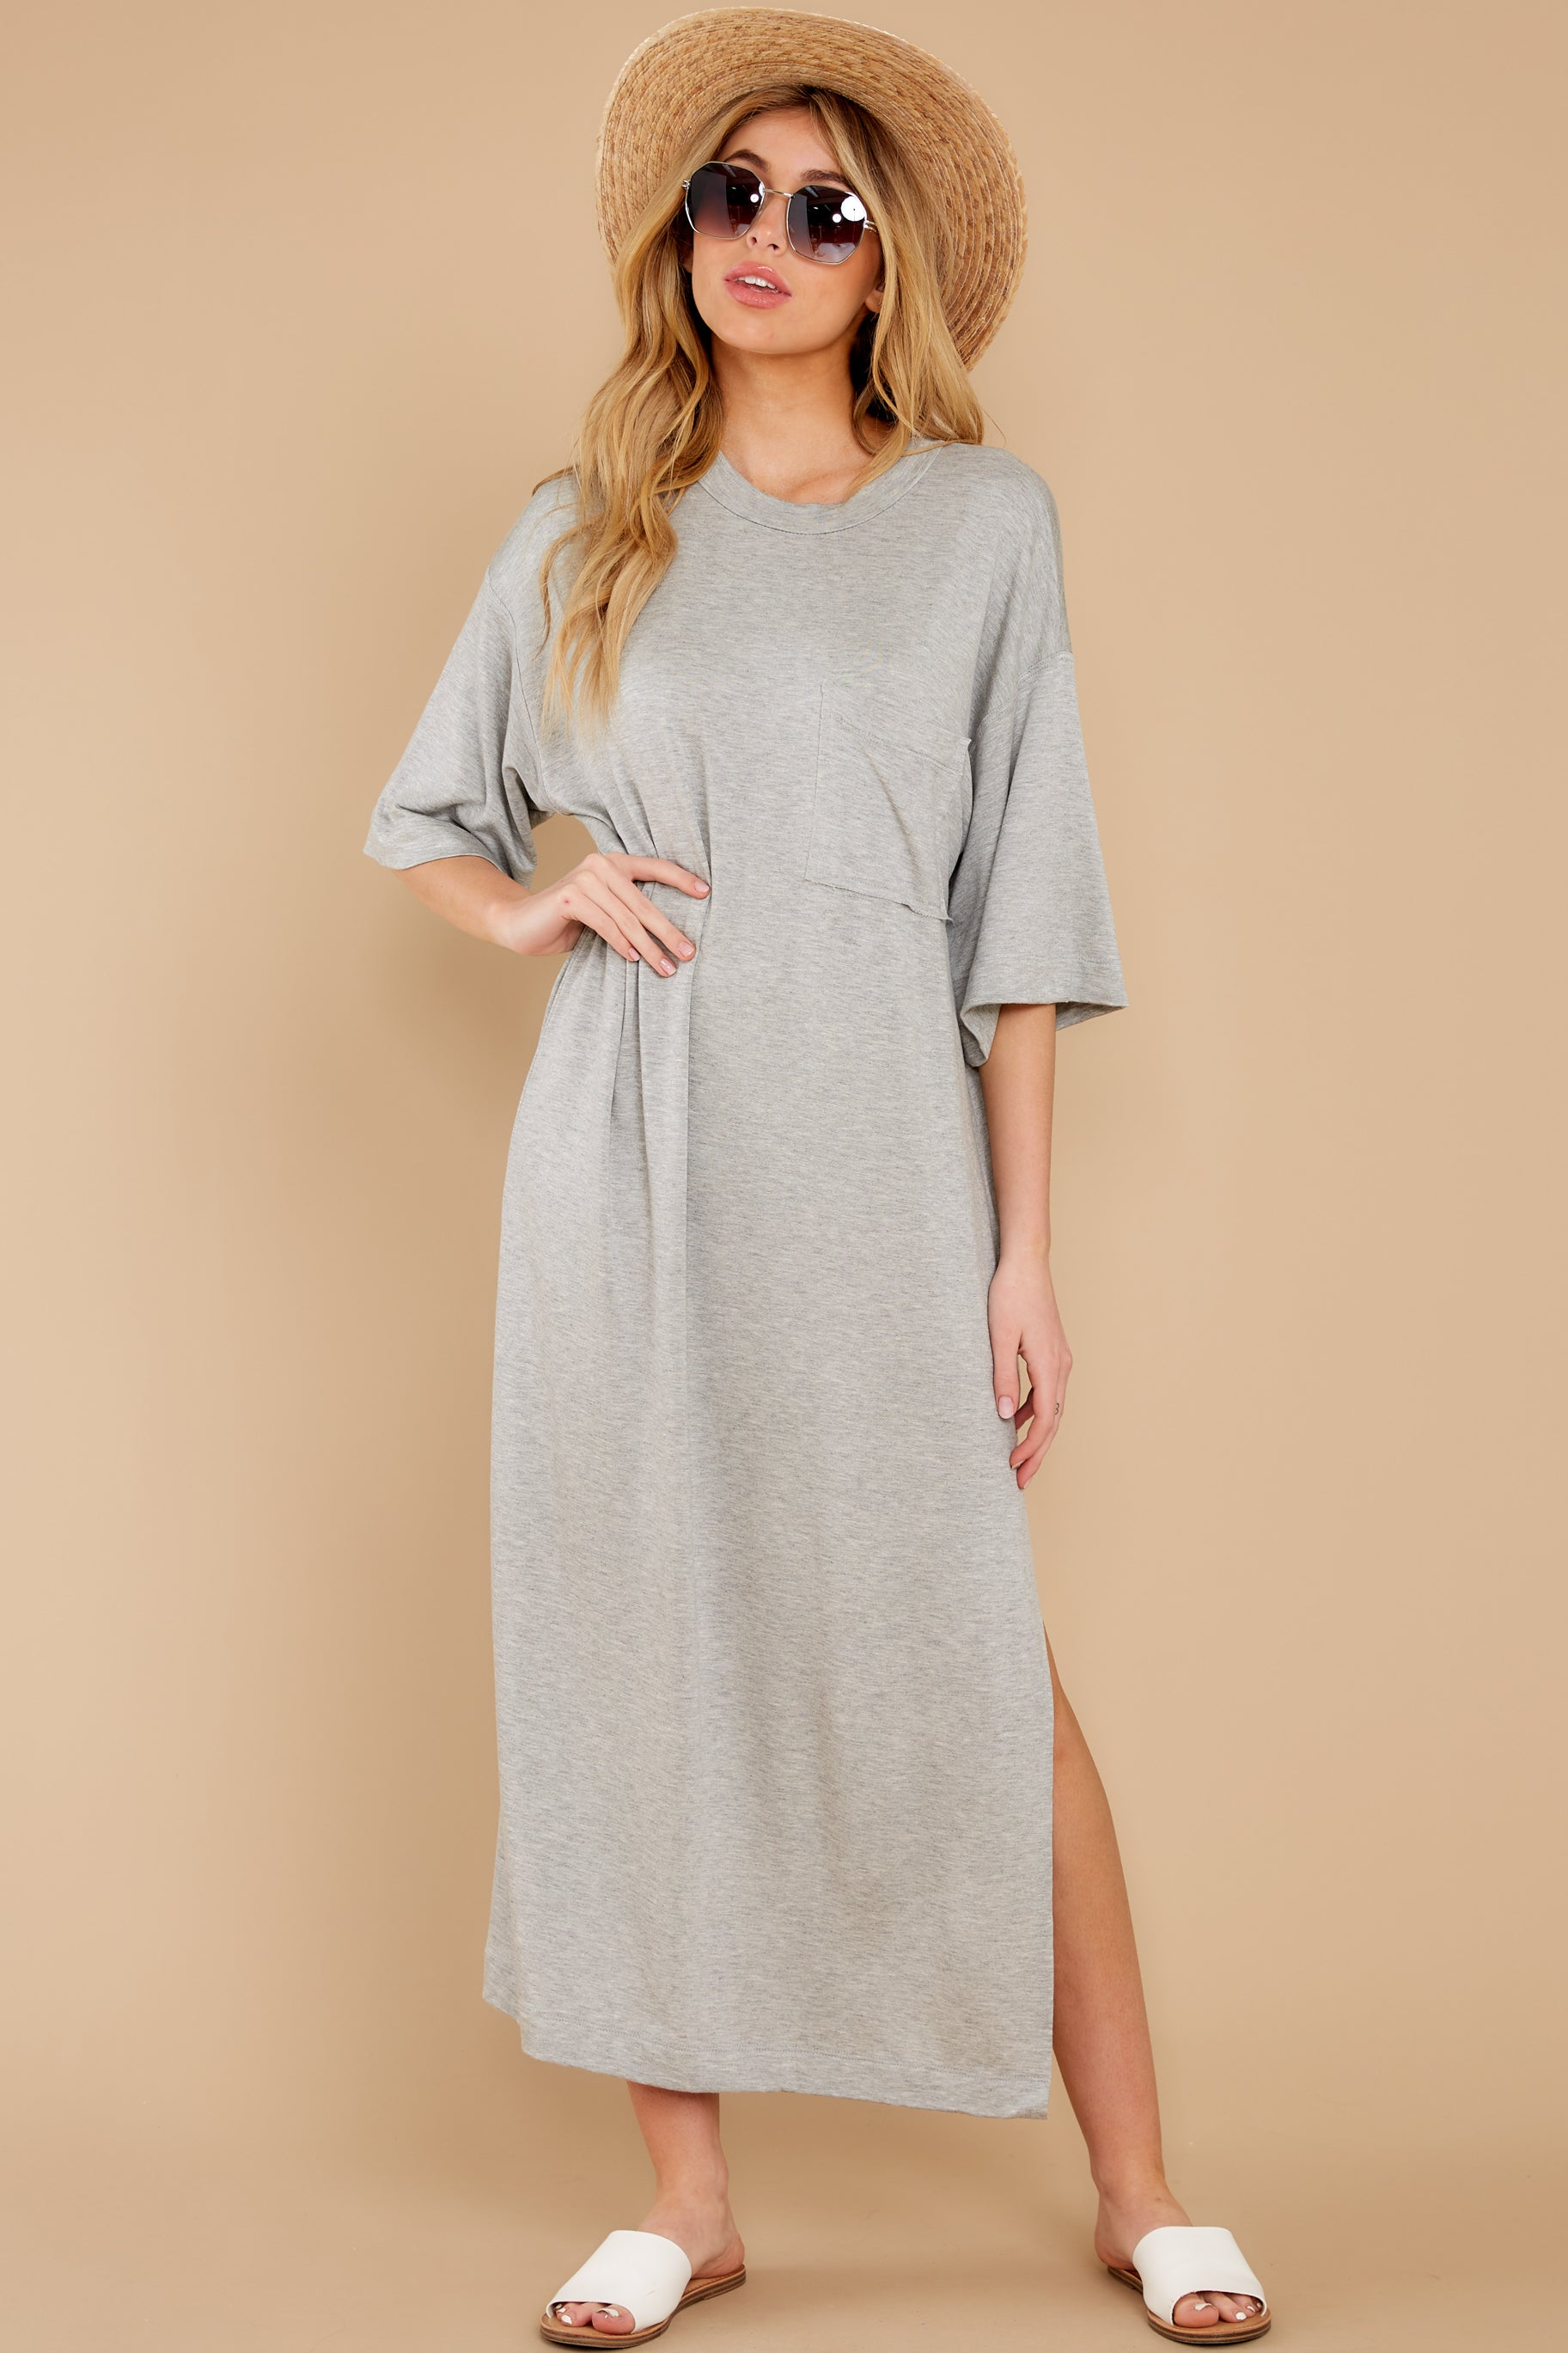 5 Lounging Around Grey Dress at reddress.com